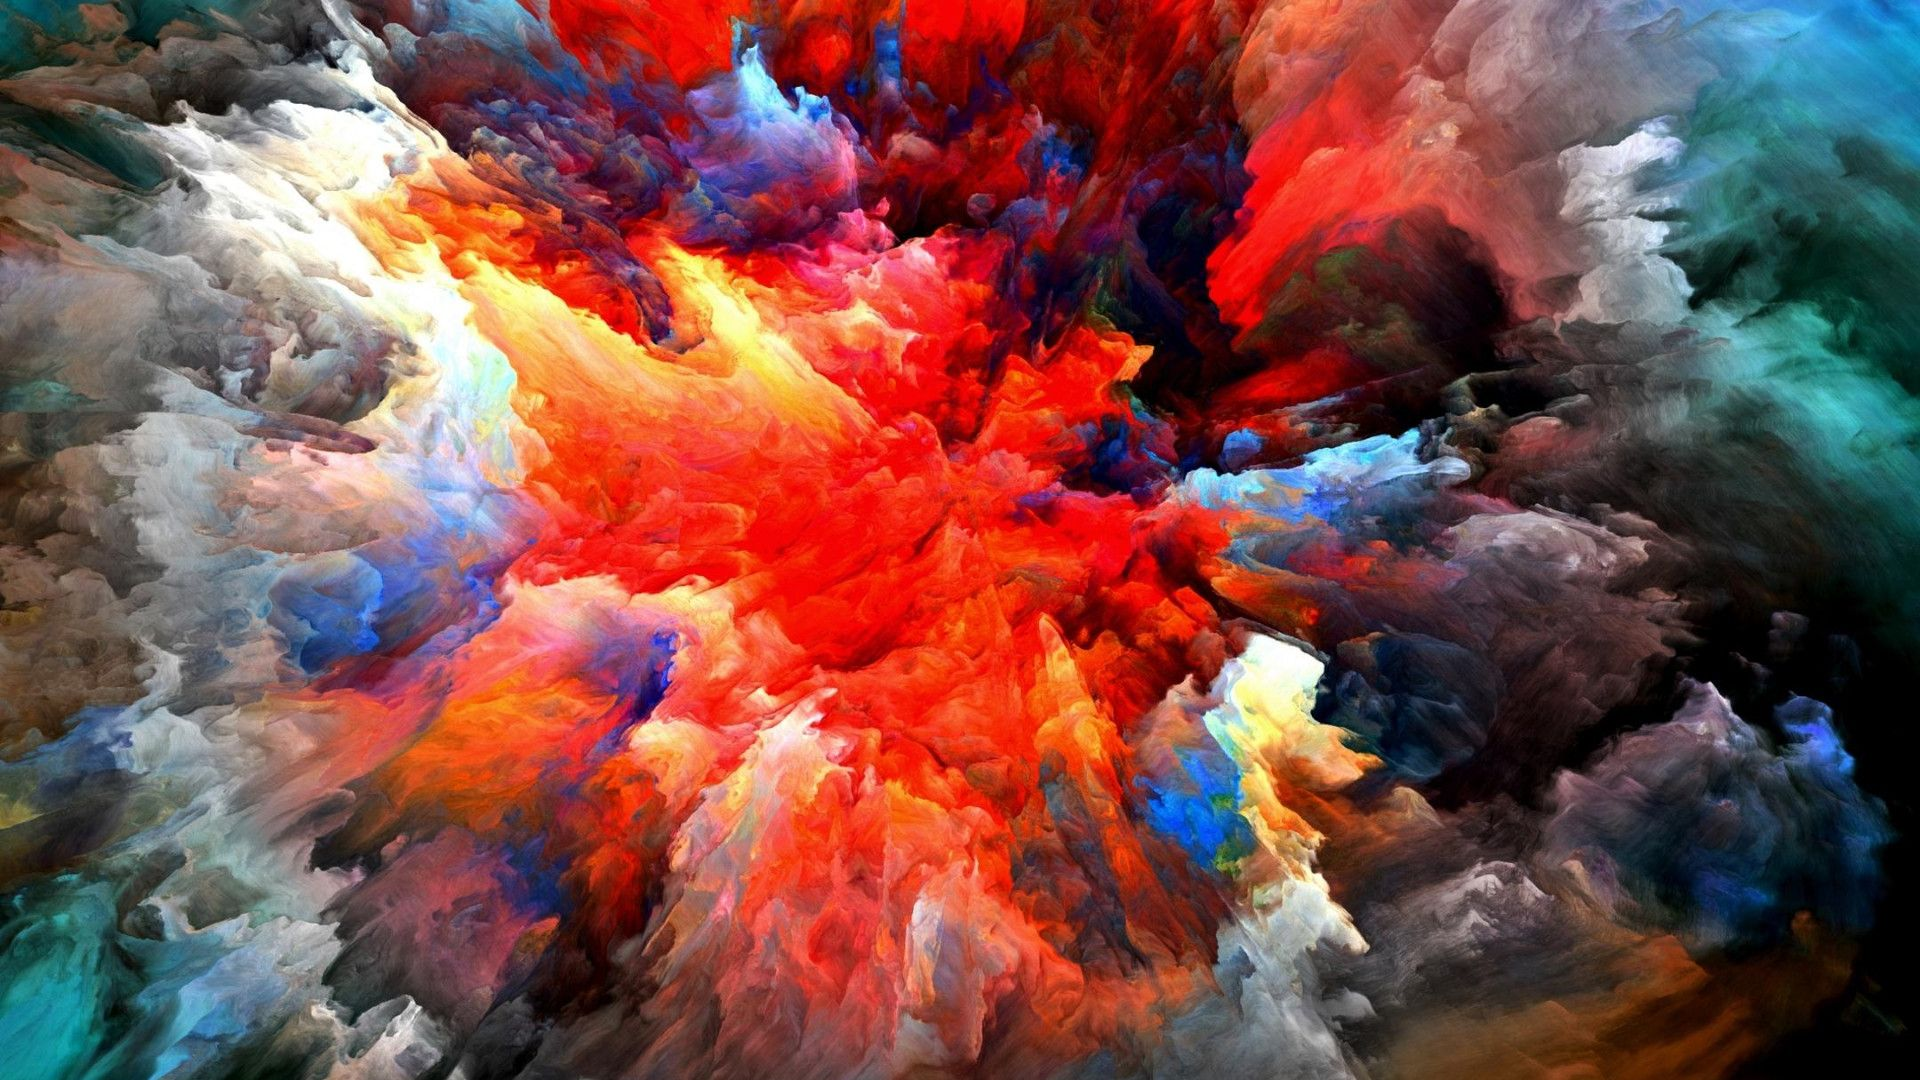 Universal explosion wallpapers top free universal - Explosion wallpaper ...